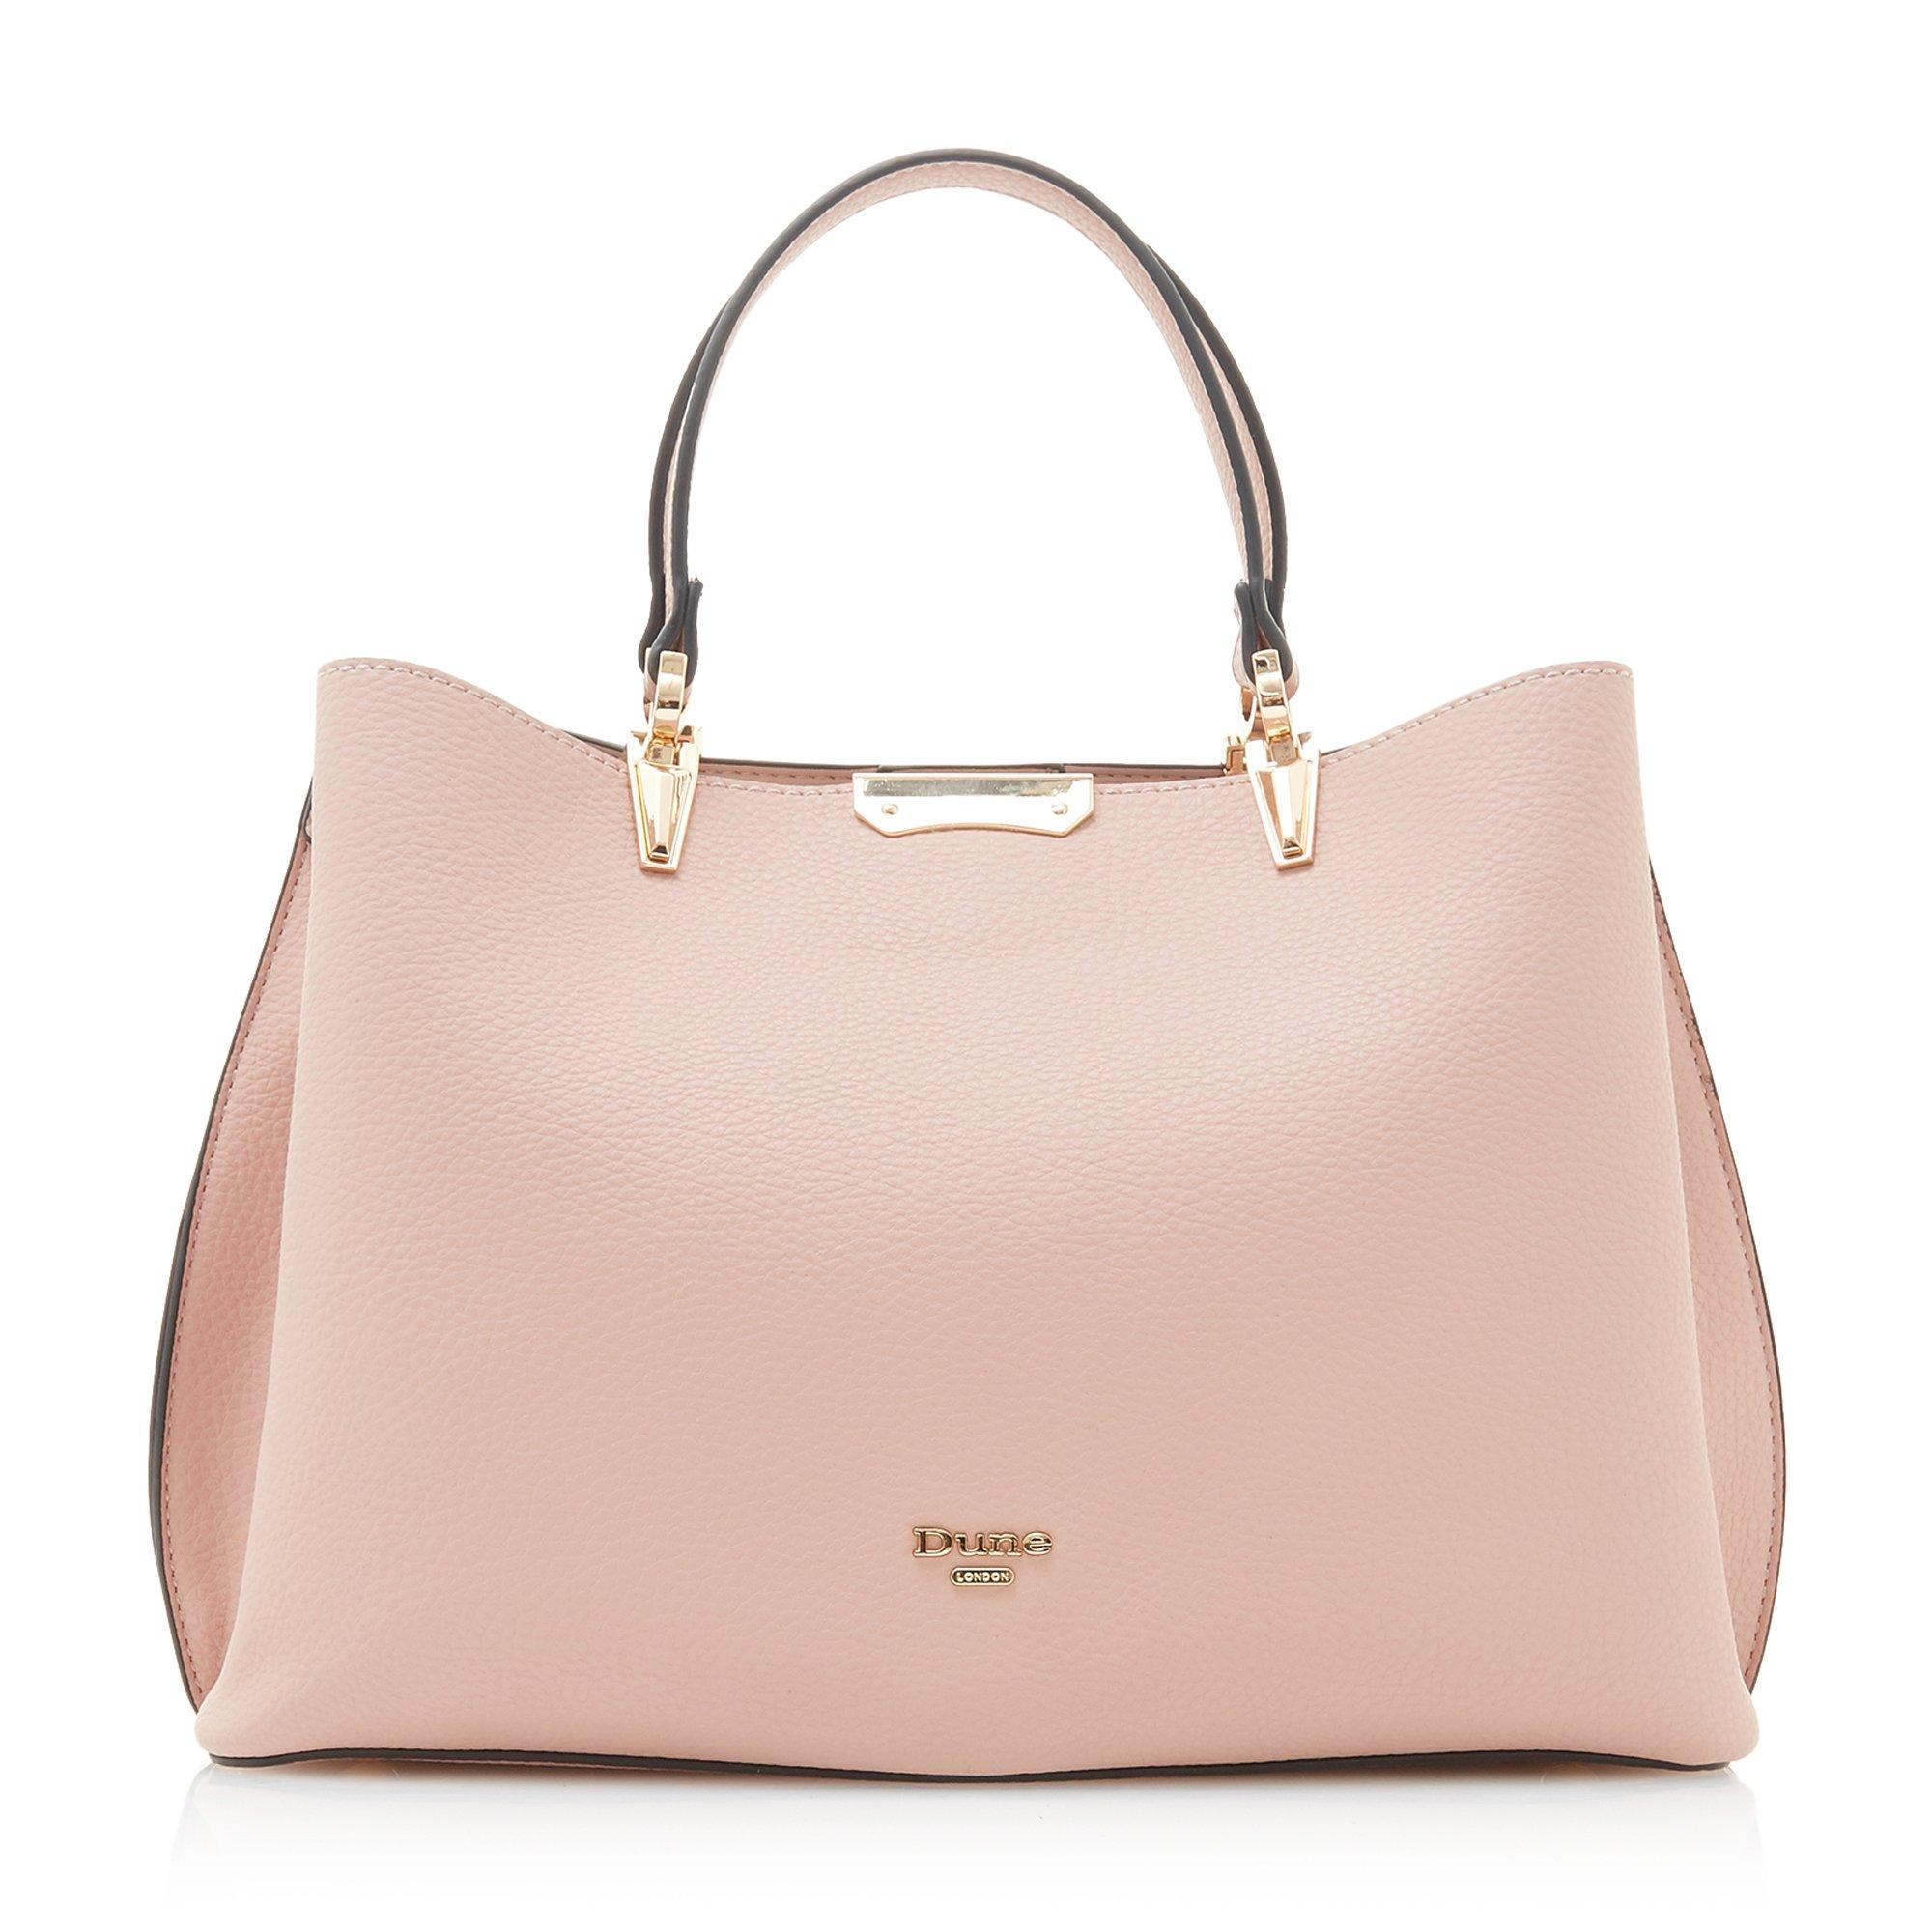 Ladies Bags - Women's Hand Bags Online | Dune London